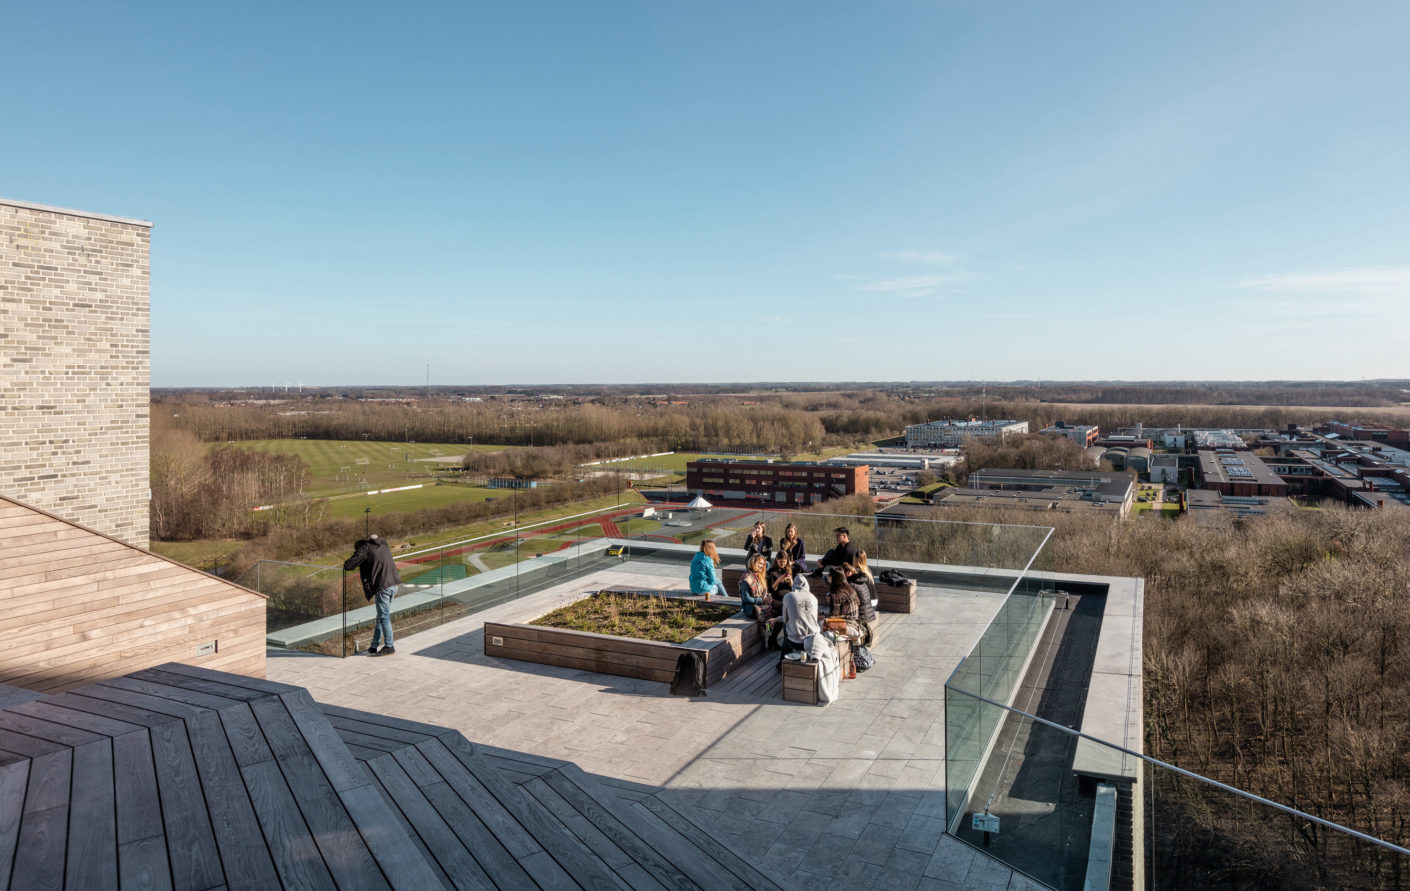 A highlight of the student residence is the large roof terrace, from which the view over the landscape of the island Funen can be enjoyed.